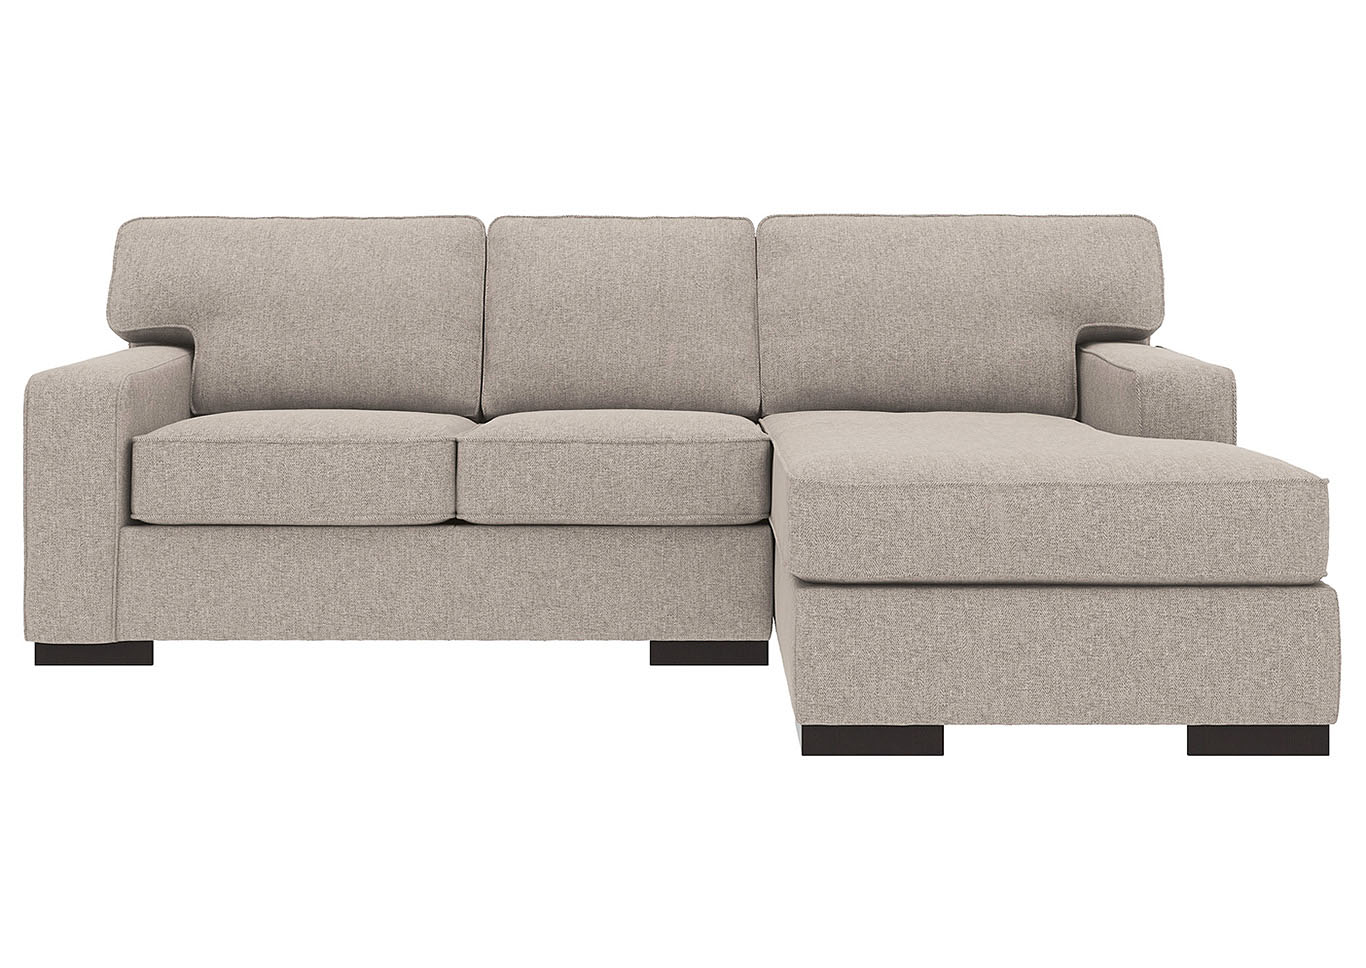 Ashlor Nuvella Slate RAF 2 Piece Chaise Sectional,Ashley